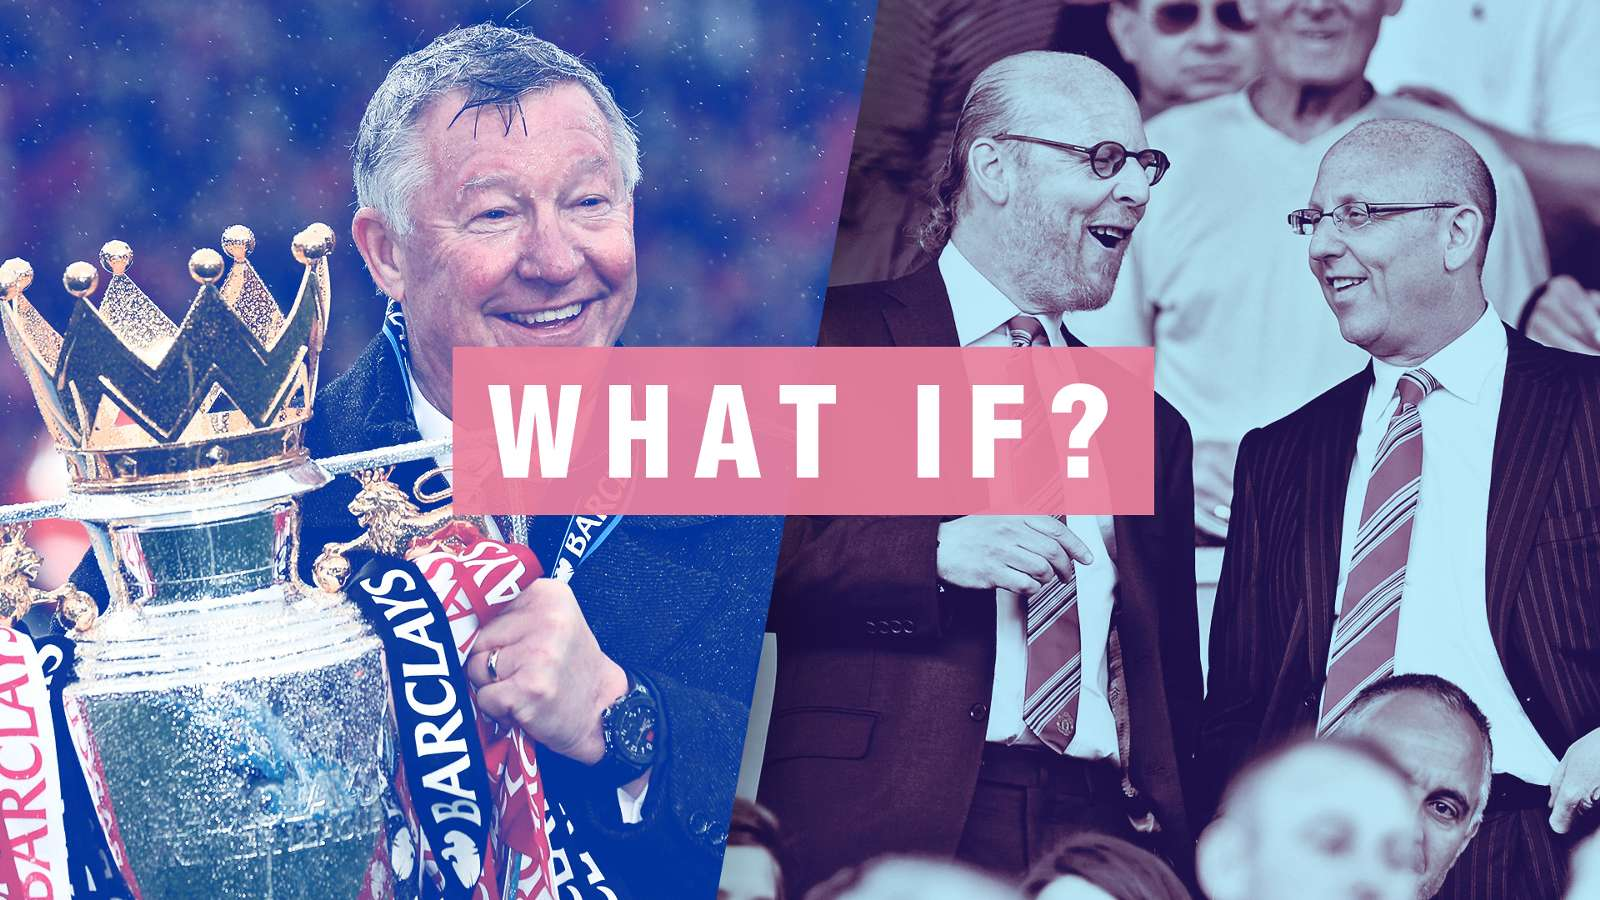 Sir Alex Ferguson Glazer Family Manchester United What if GFX